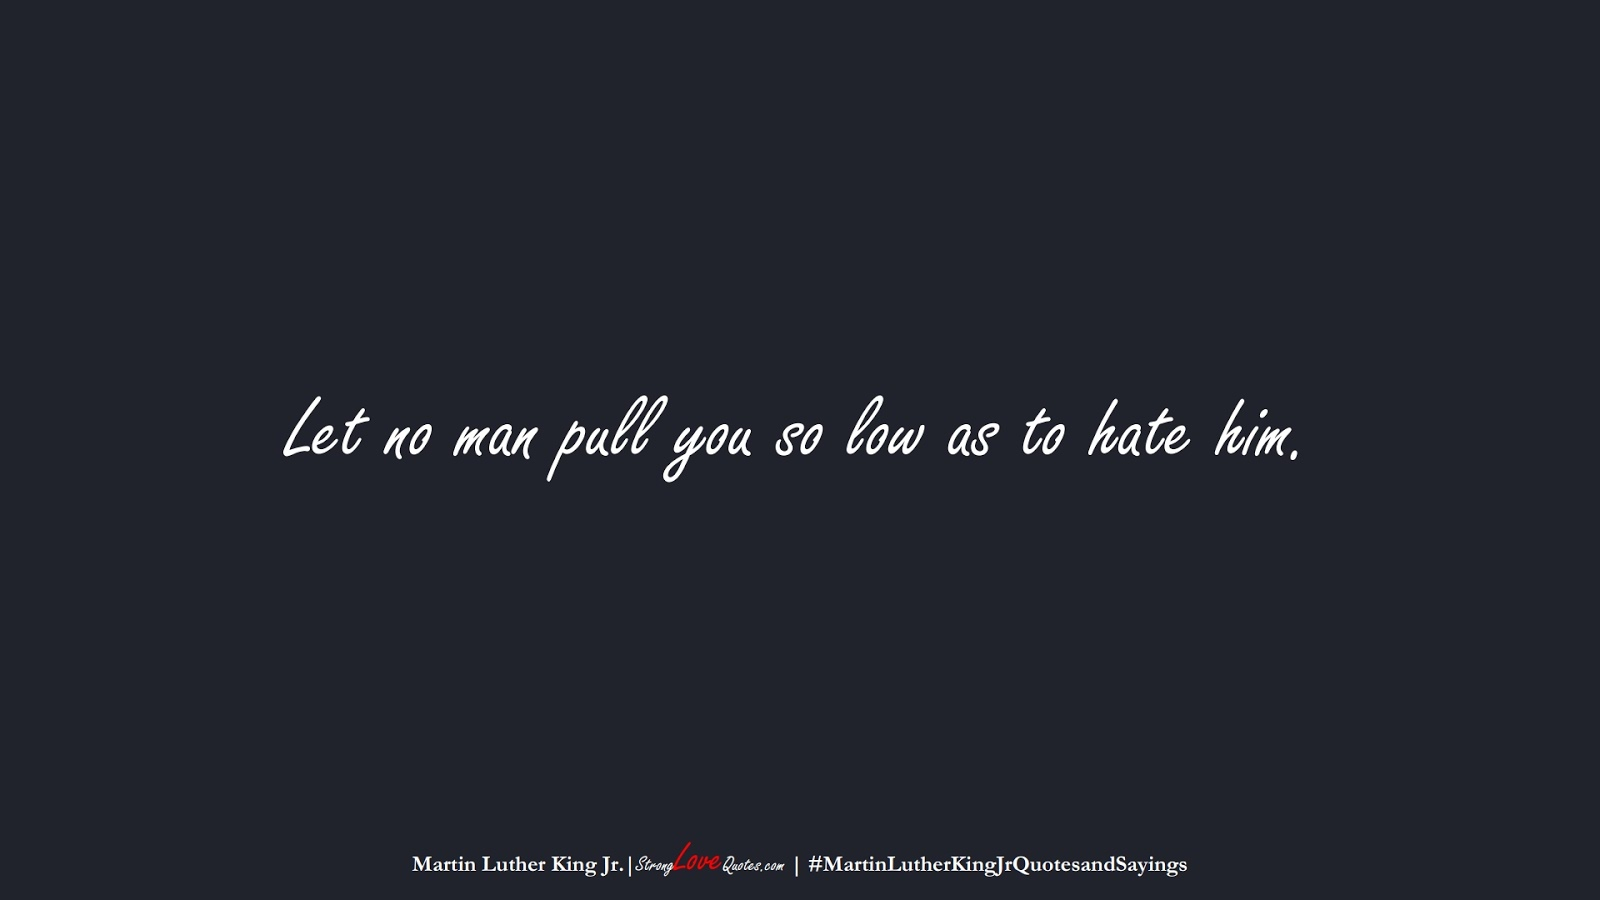 Let no man pull you so low as to hate him. (Martin Luther King Jr.);  #MartinLutherKingJrQuotesandSayings